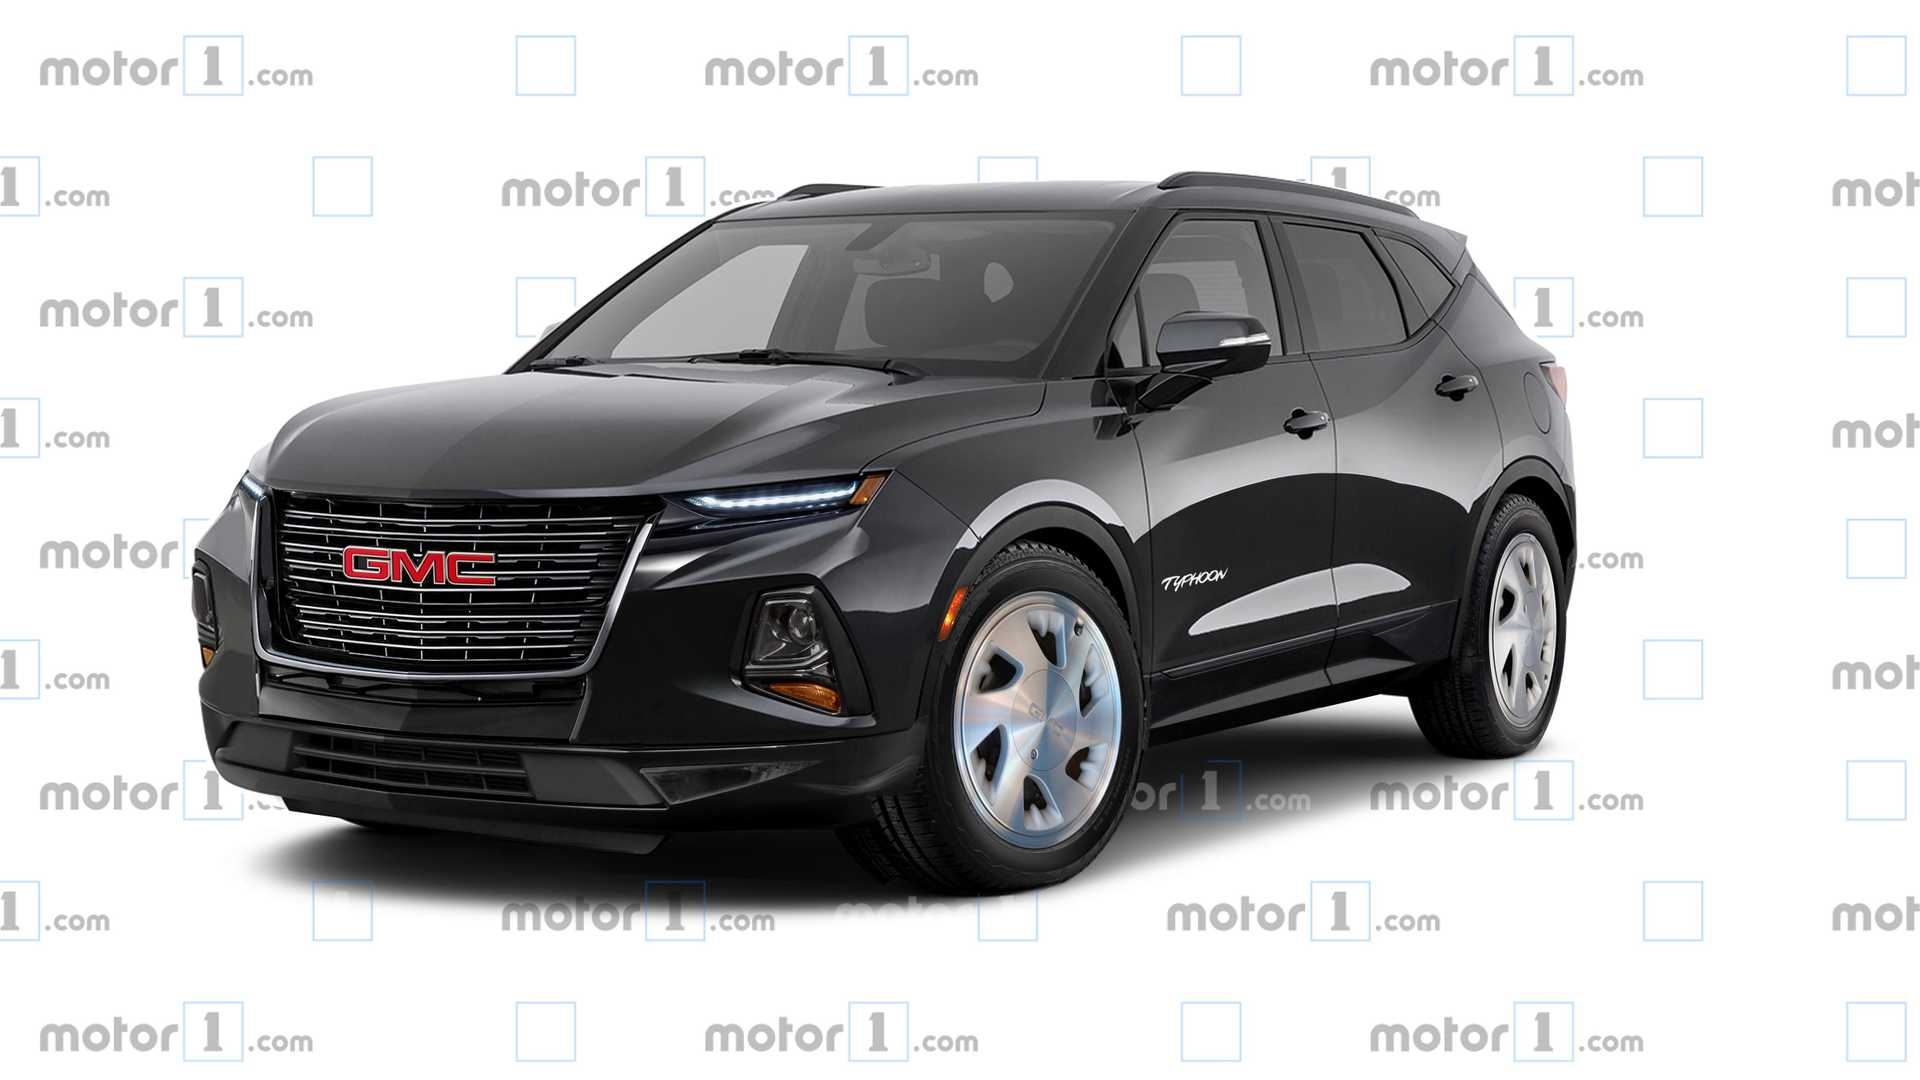 Gmc Typhoon Rendering Is The 500-Hp Chevy Blazer We Want 2022 Chevy Blazer Aftermarket, All Wheel Drive, Auto Stop